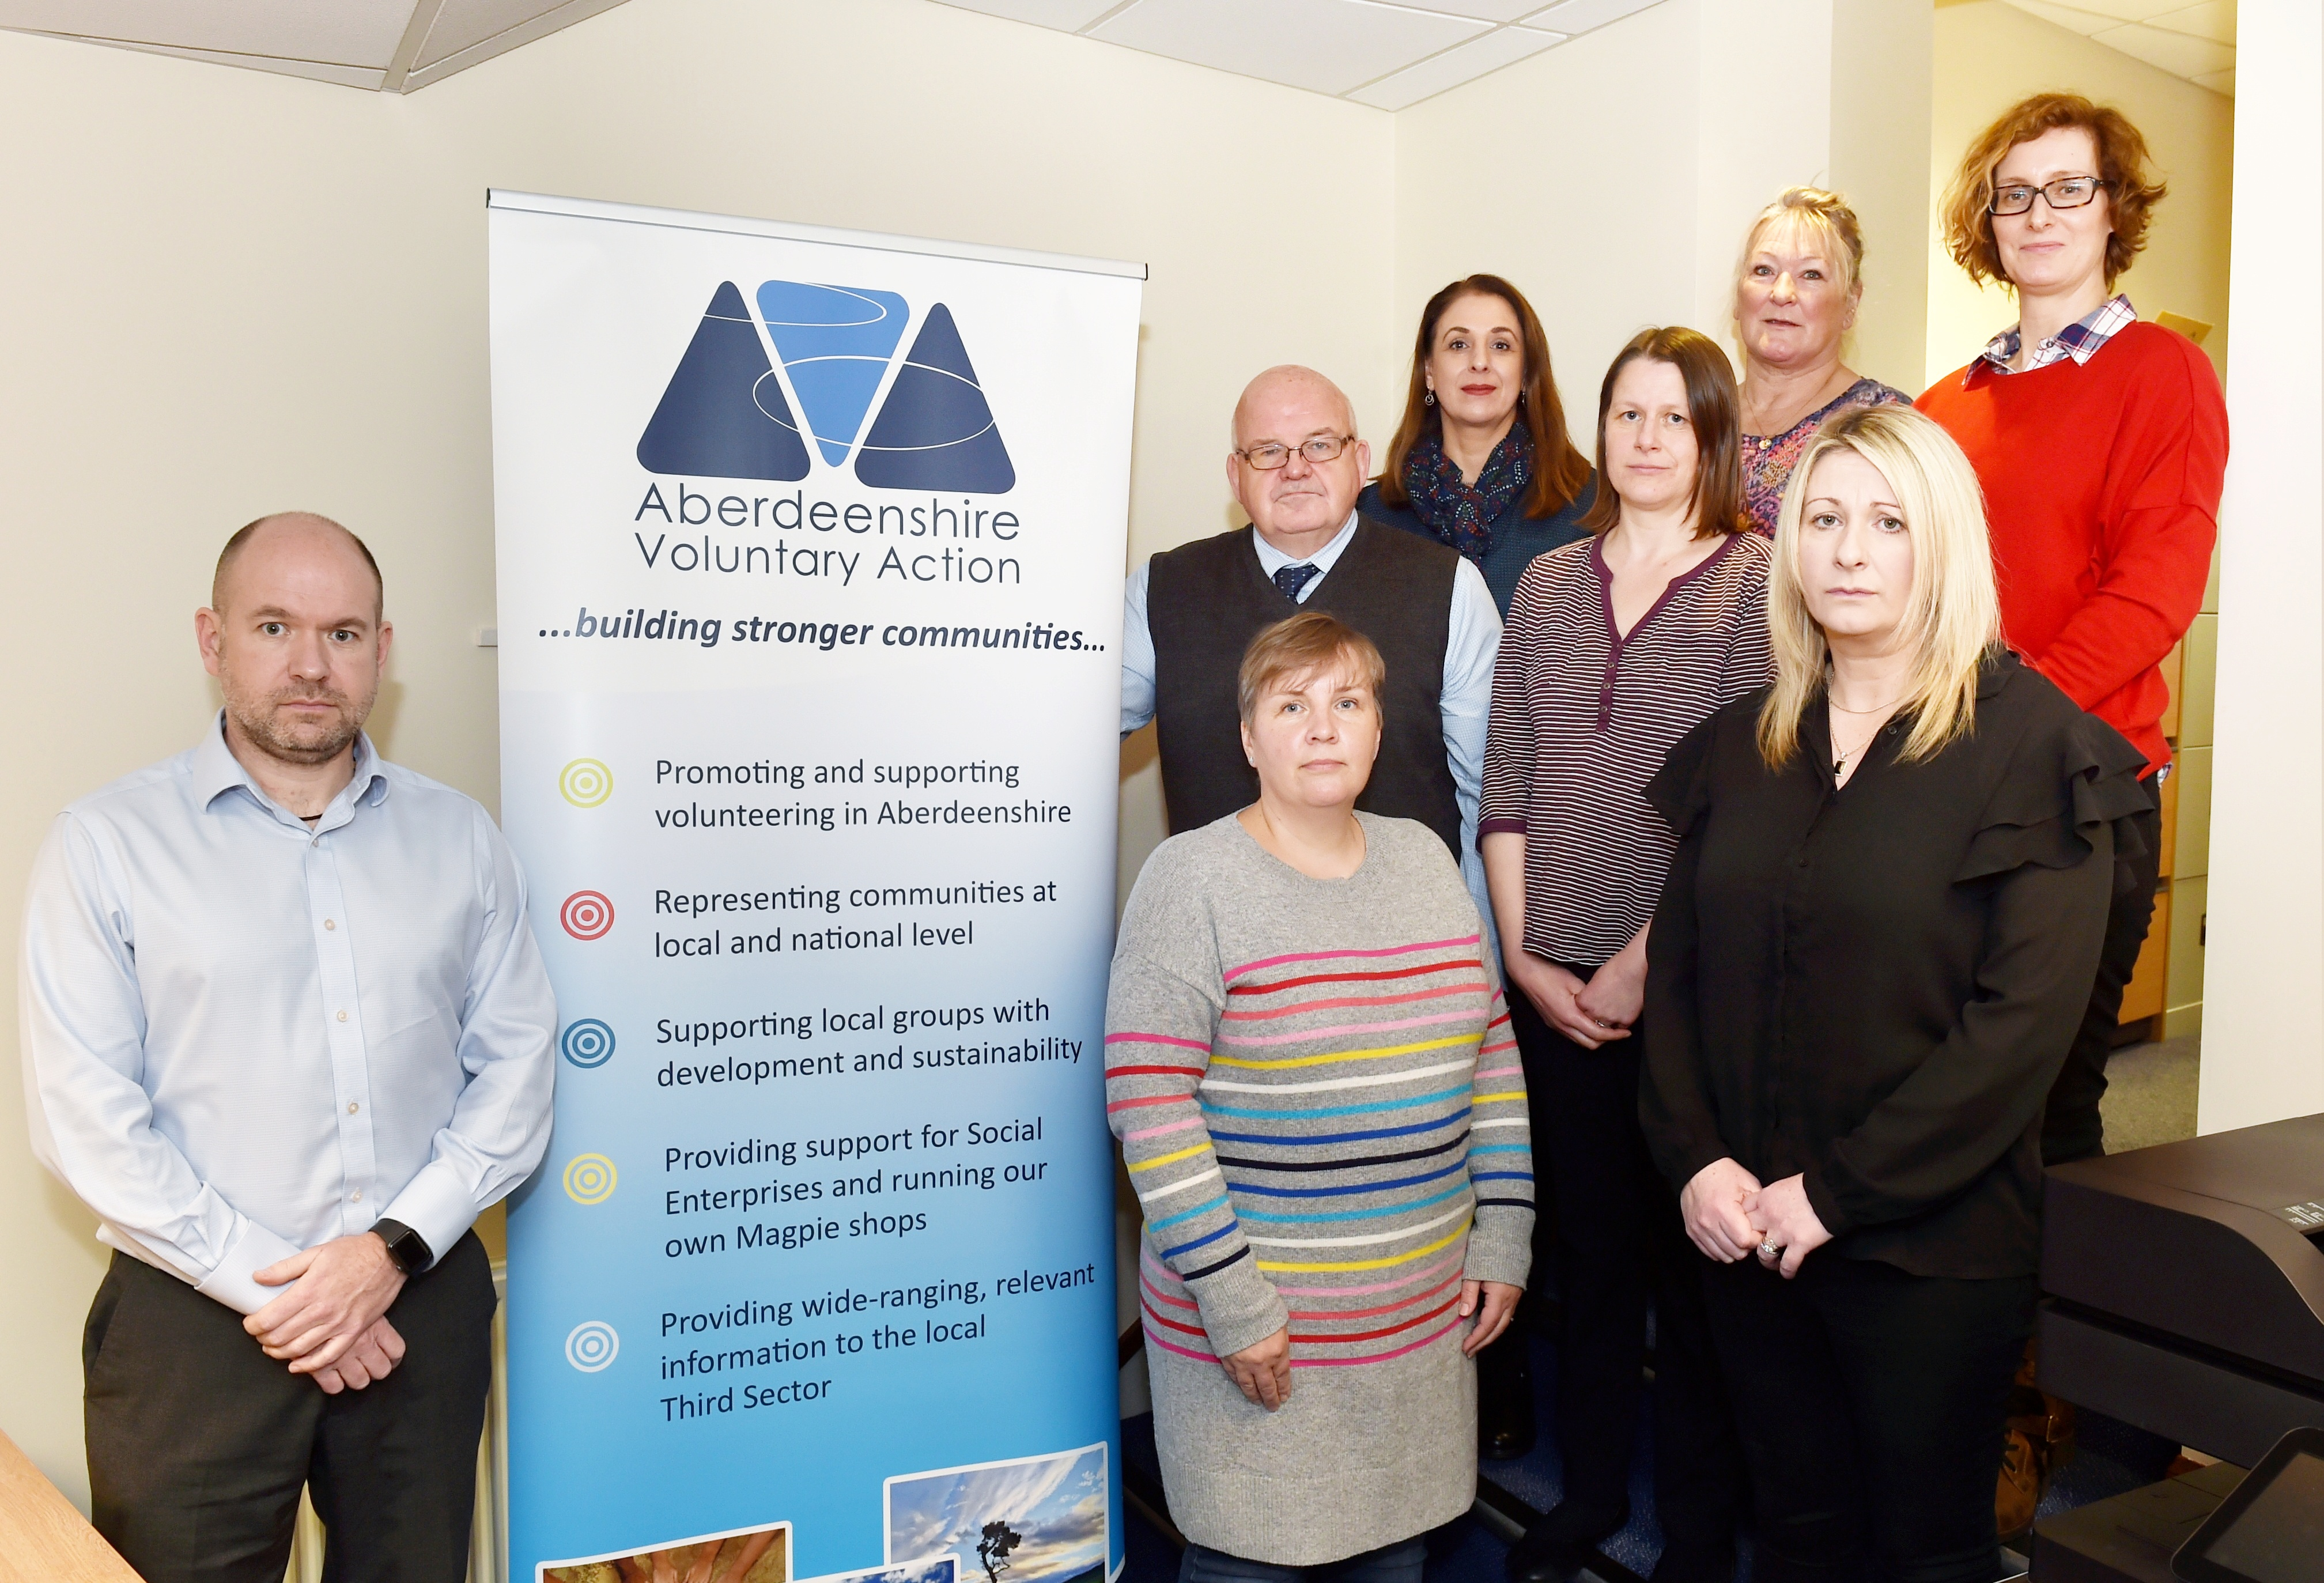 AVA chief executive Dan Shaw (left) and staff (back, from left) Sandra McGuigan, Lorna Sandison, Rhona Davidson. (middle) Keith Anderson, Donna Speed and Isabelle Taylor. (front) Aileen Longino. Picture by COLIN RENNIE